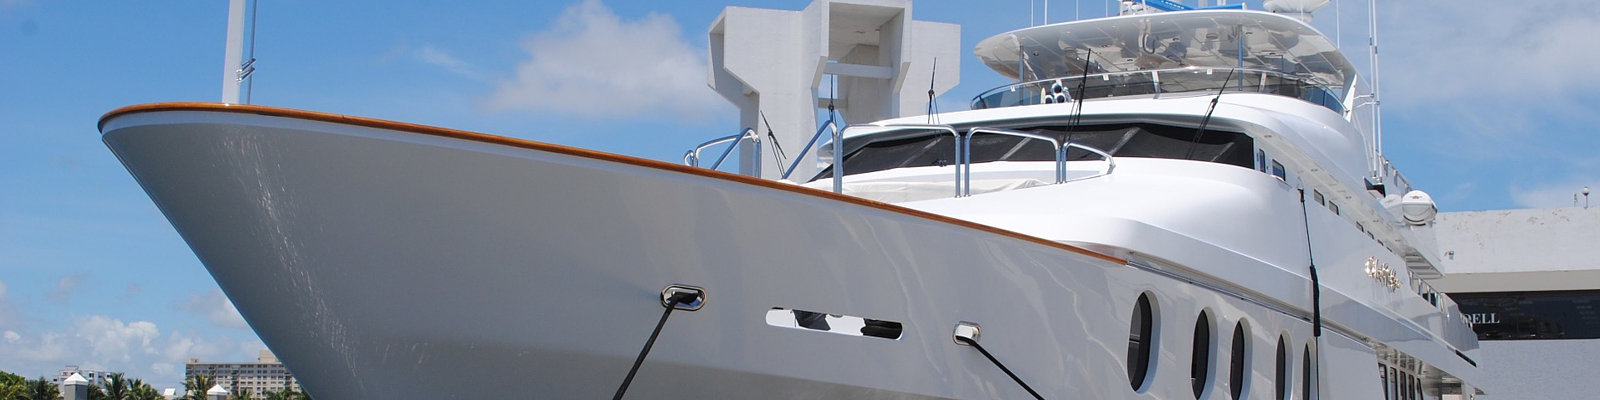 Non expat mortgage for superyacht captain